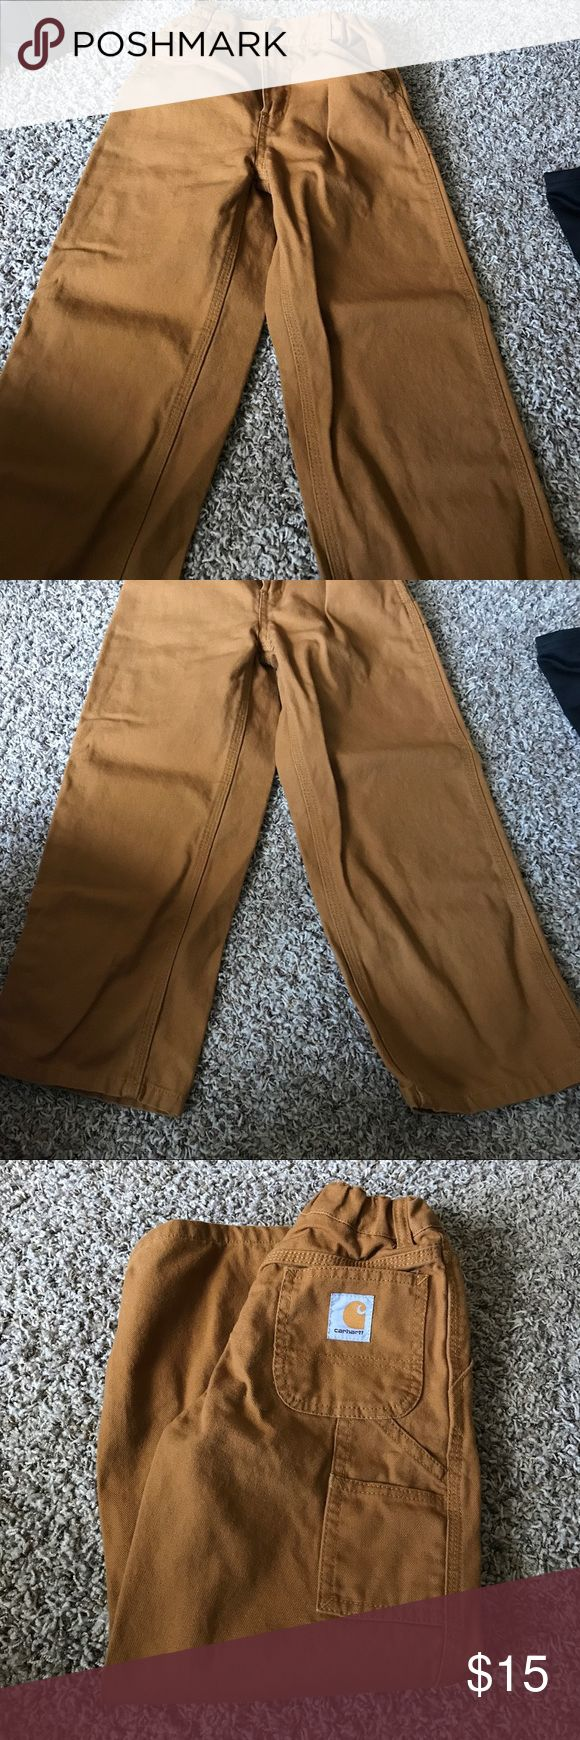 Perfect condition! Boy's Carhartt pants, size 6 Worn once! Perfect condition. Adjustable waist band, size 6. Carhartt Bottoms